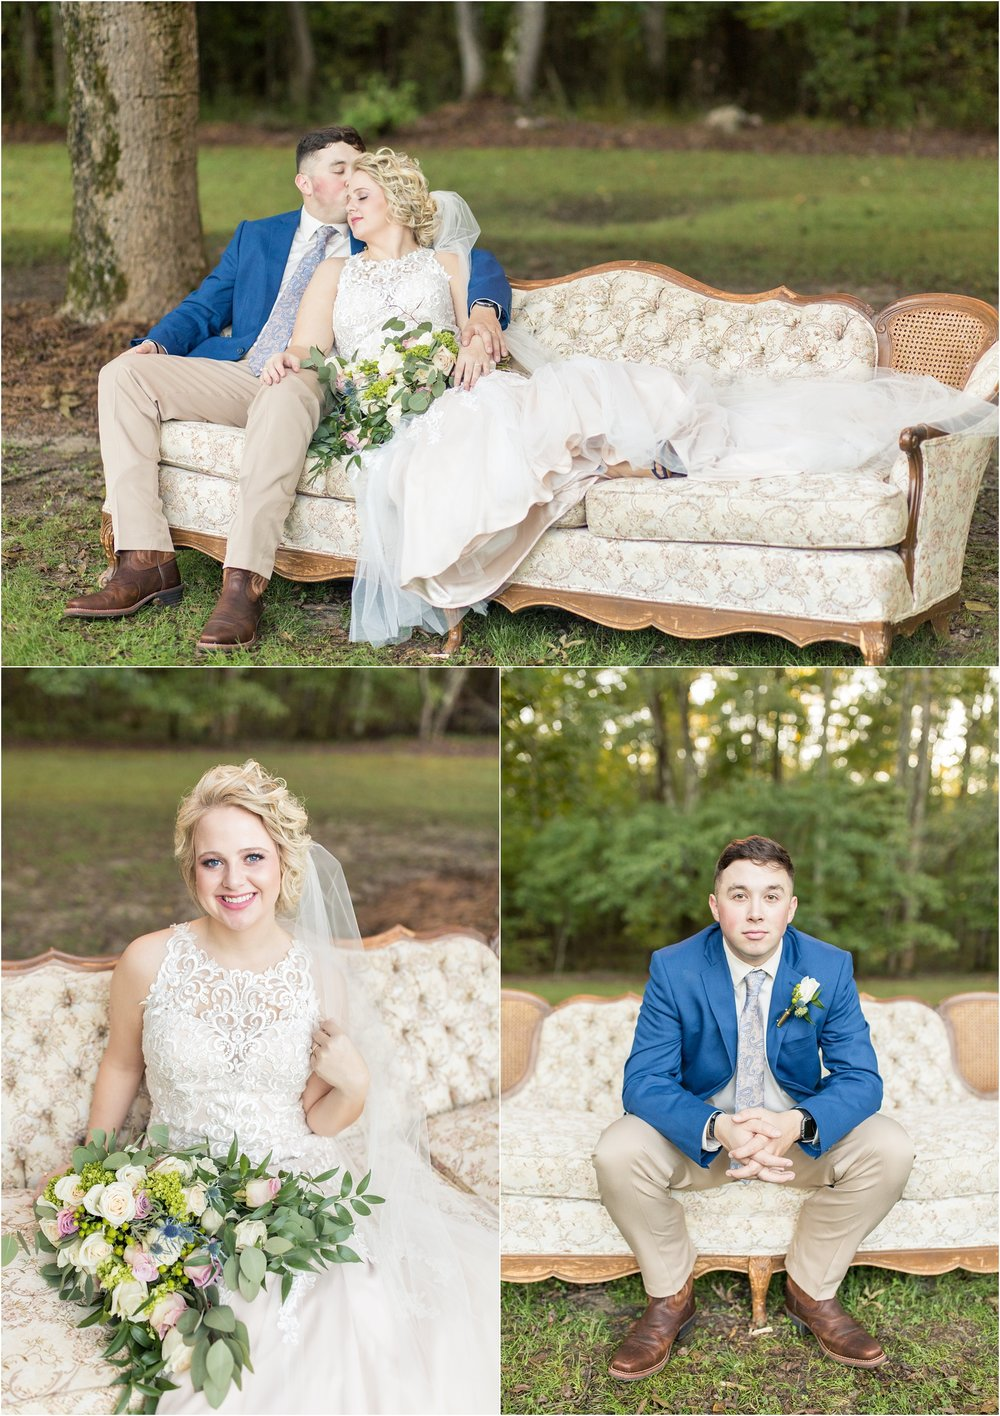 Savannah Eve Photography- Cannon-Gossett Wedding- Sneak Peek-94.jpg